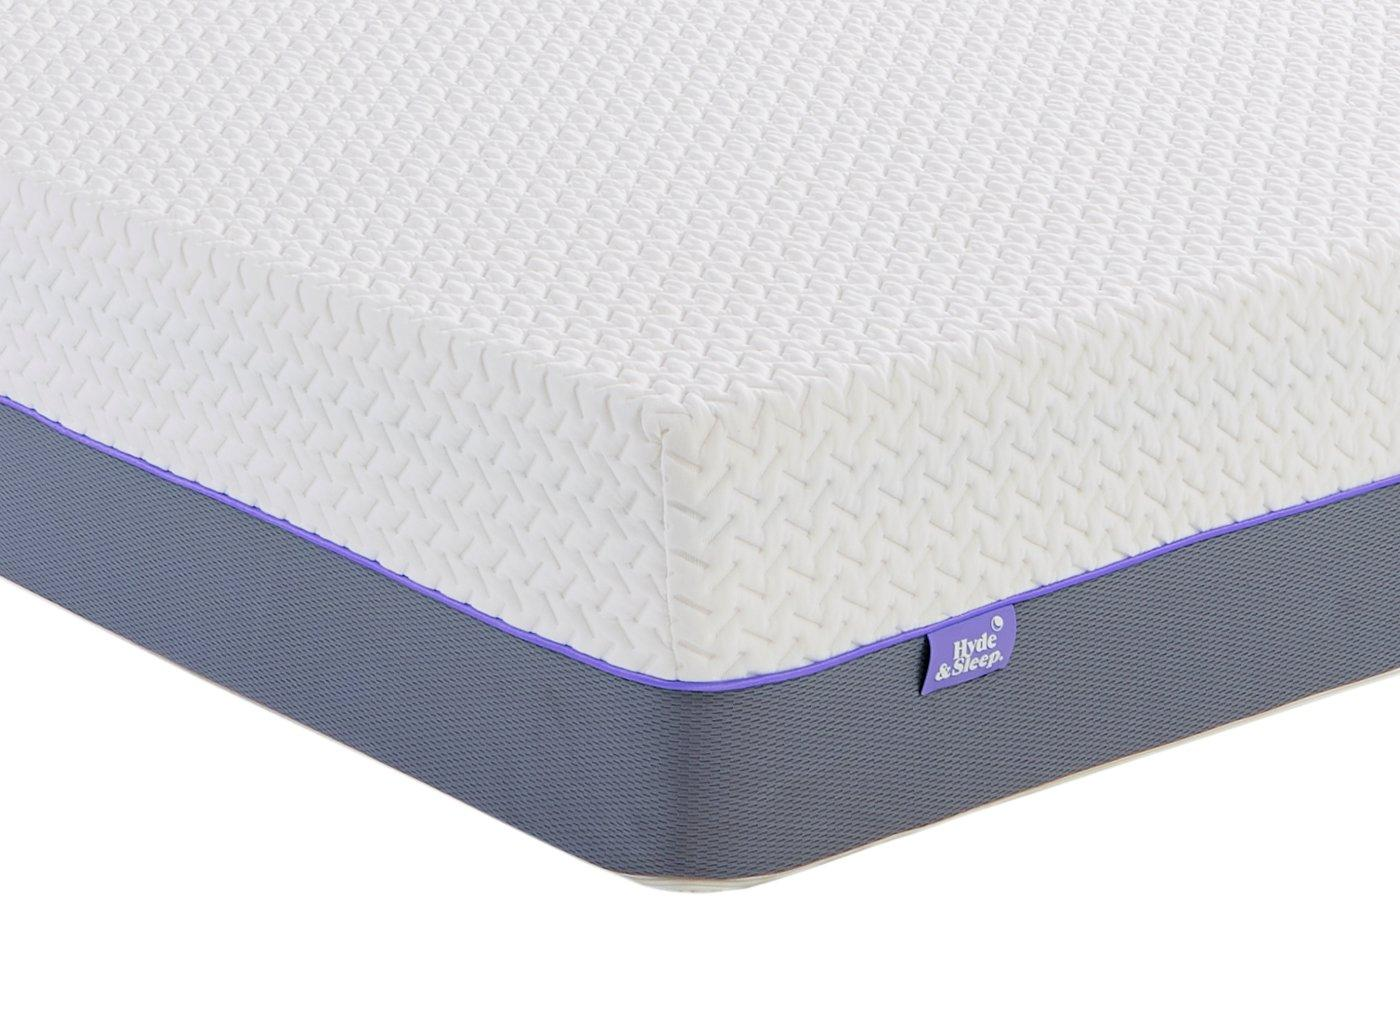 Hyde & Sleep Hybrid Lilac Mattress 6'0 Super king